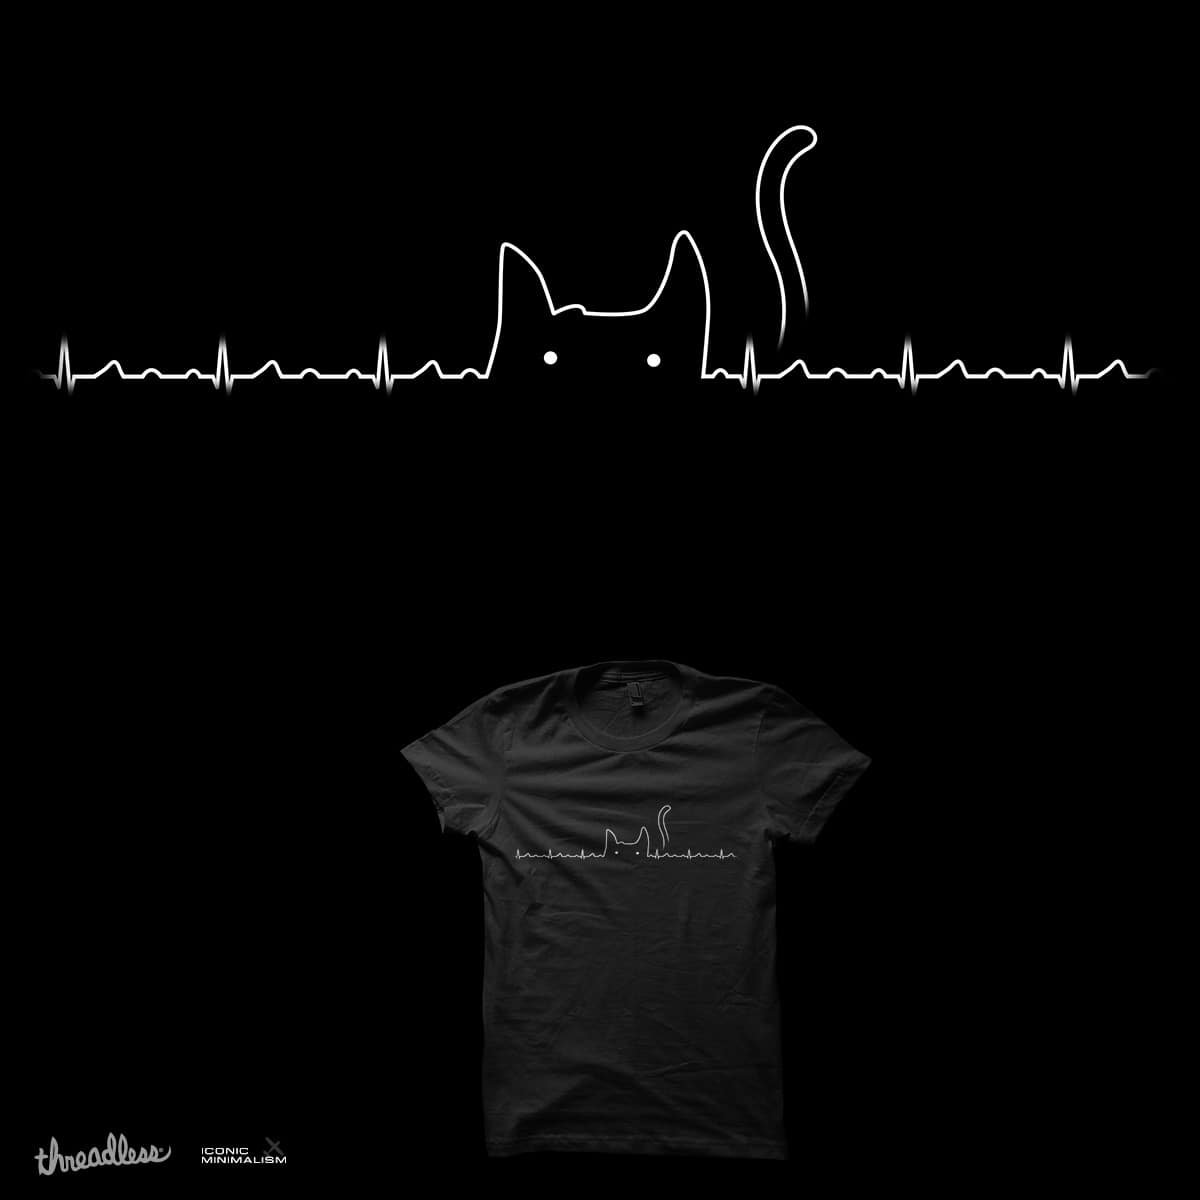 Cat Lover  by tobiasfonseca on Threadless